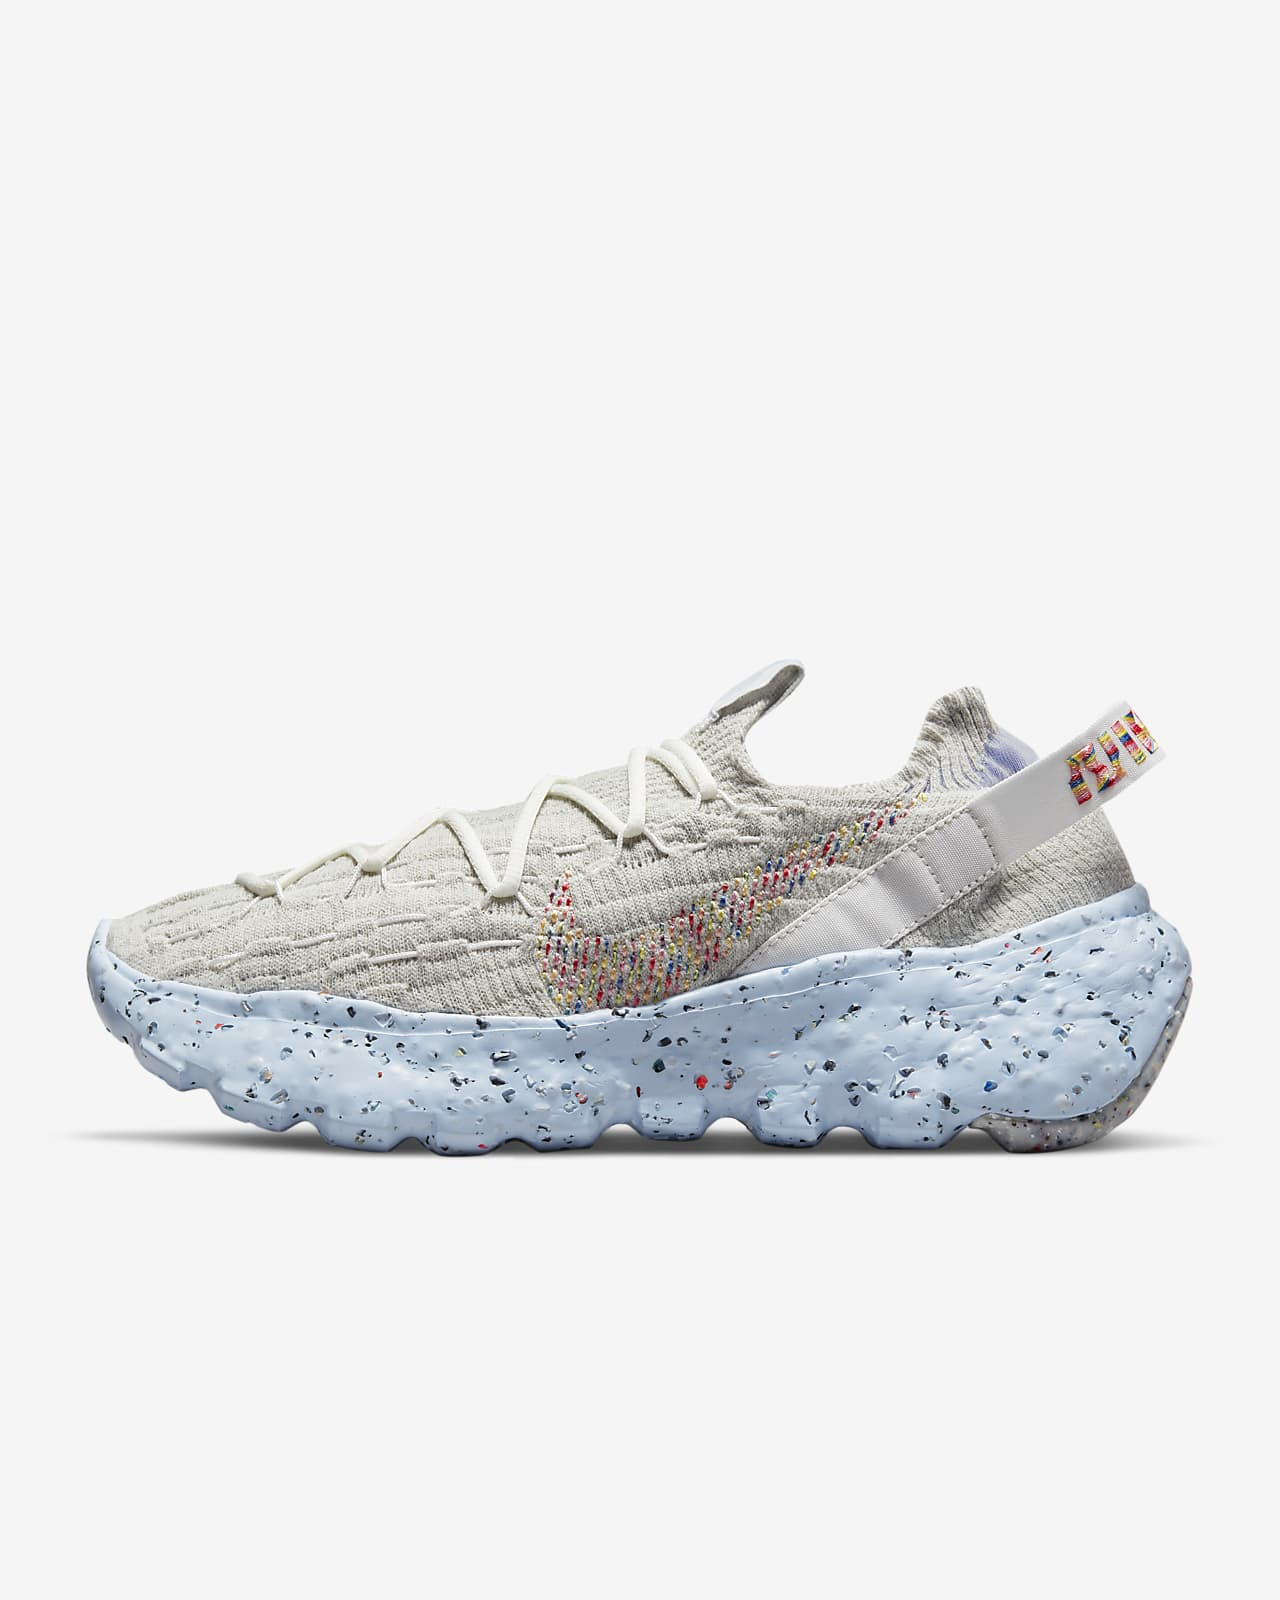 Chaussure Nike Space Hippie 04 pour Homme. Nike FR